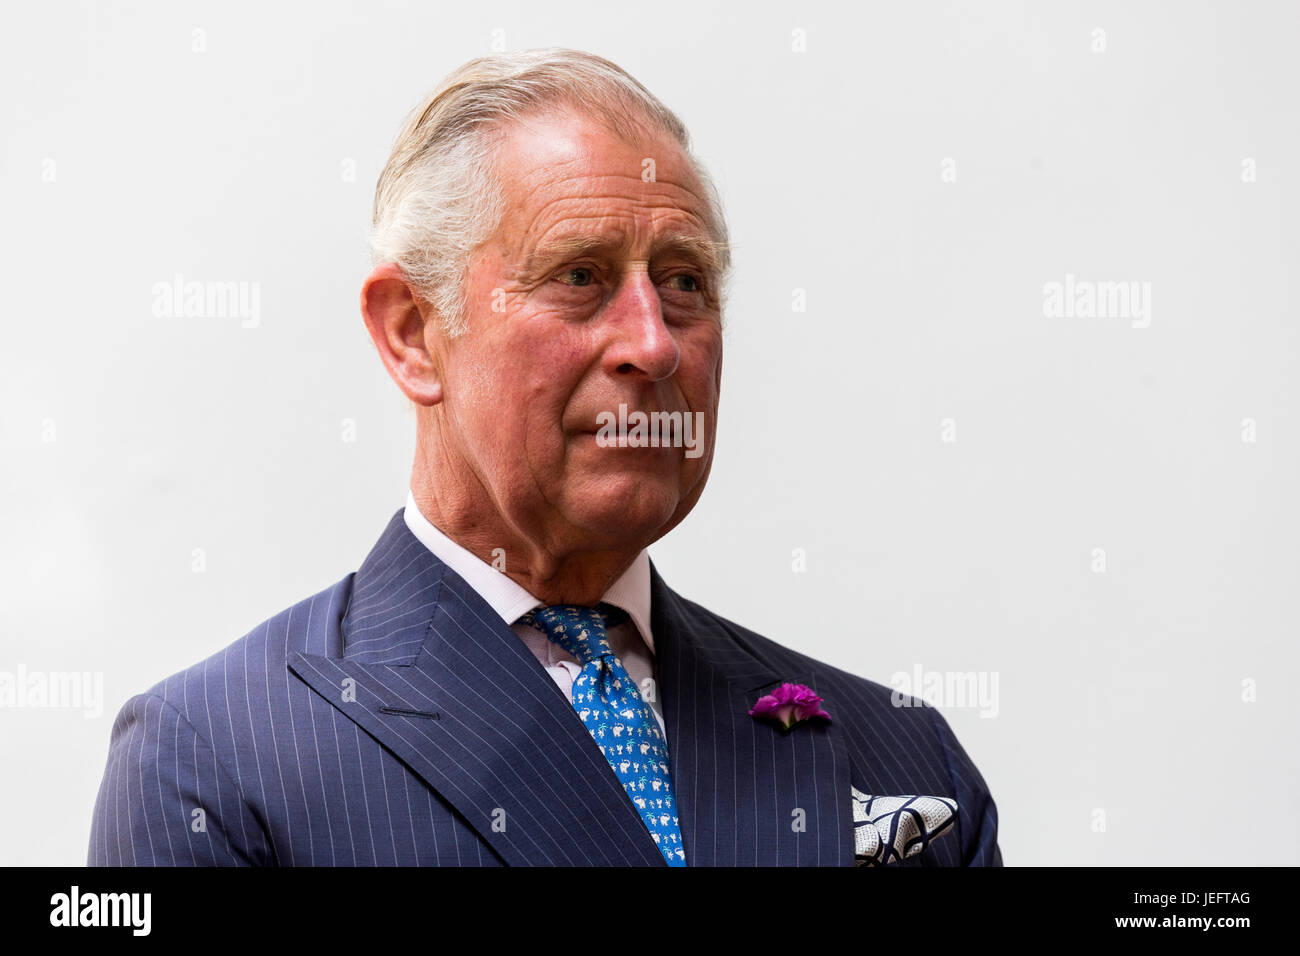 Prince Charles, The Prince of Wales, Portrait - Stock Image